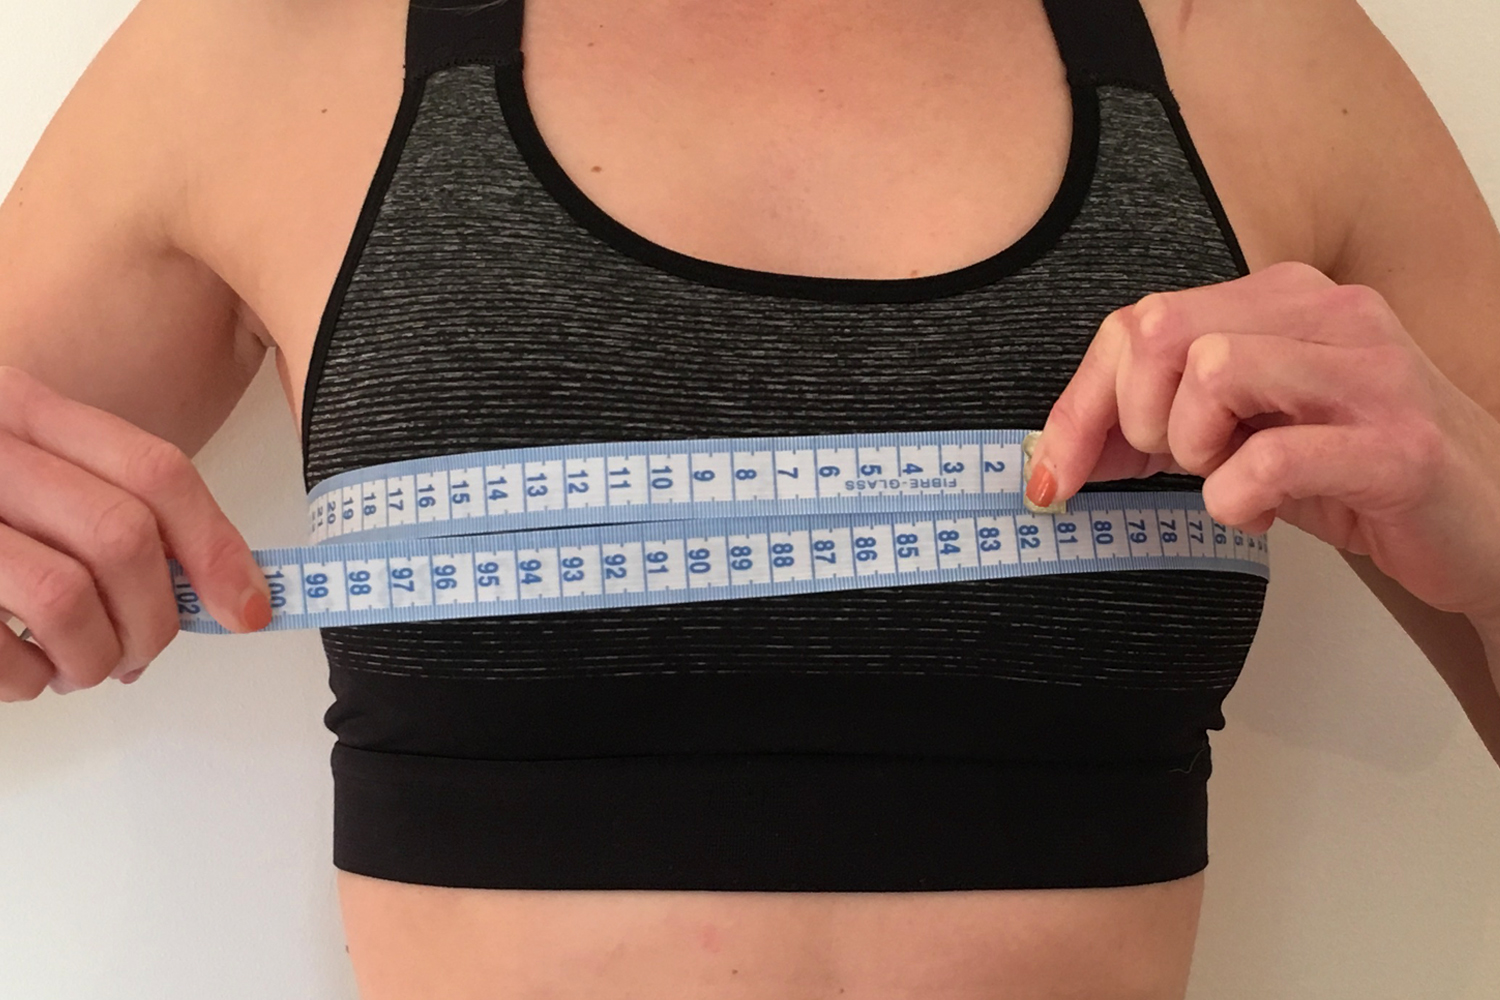 body measurements,bust measurement,how to measure chest size,how to measure chest,chest measurement